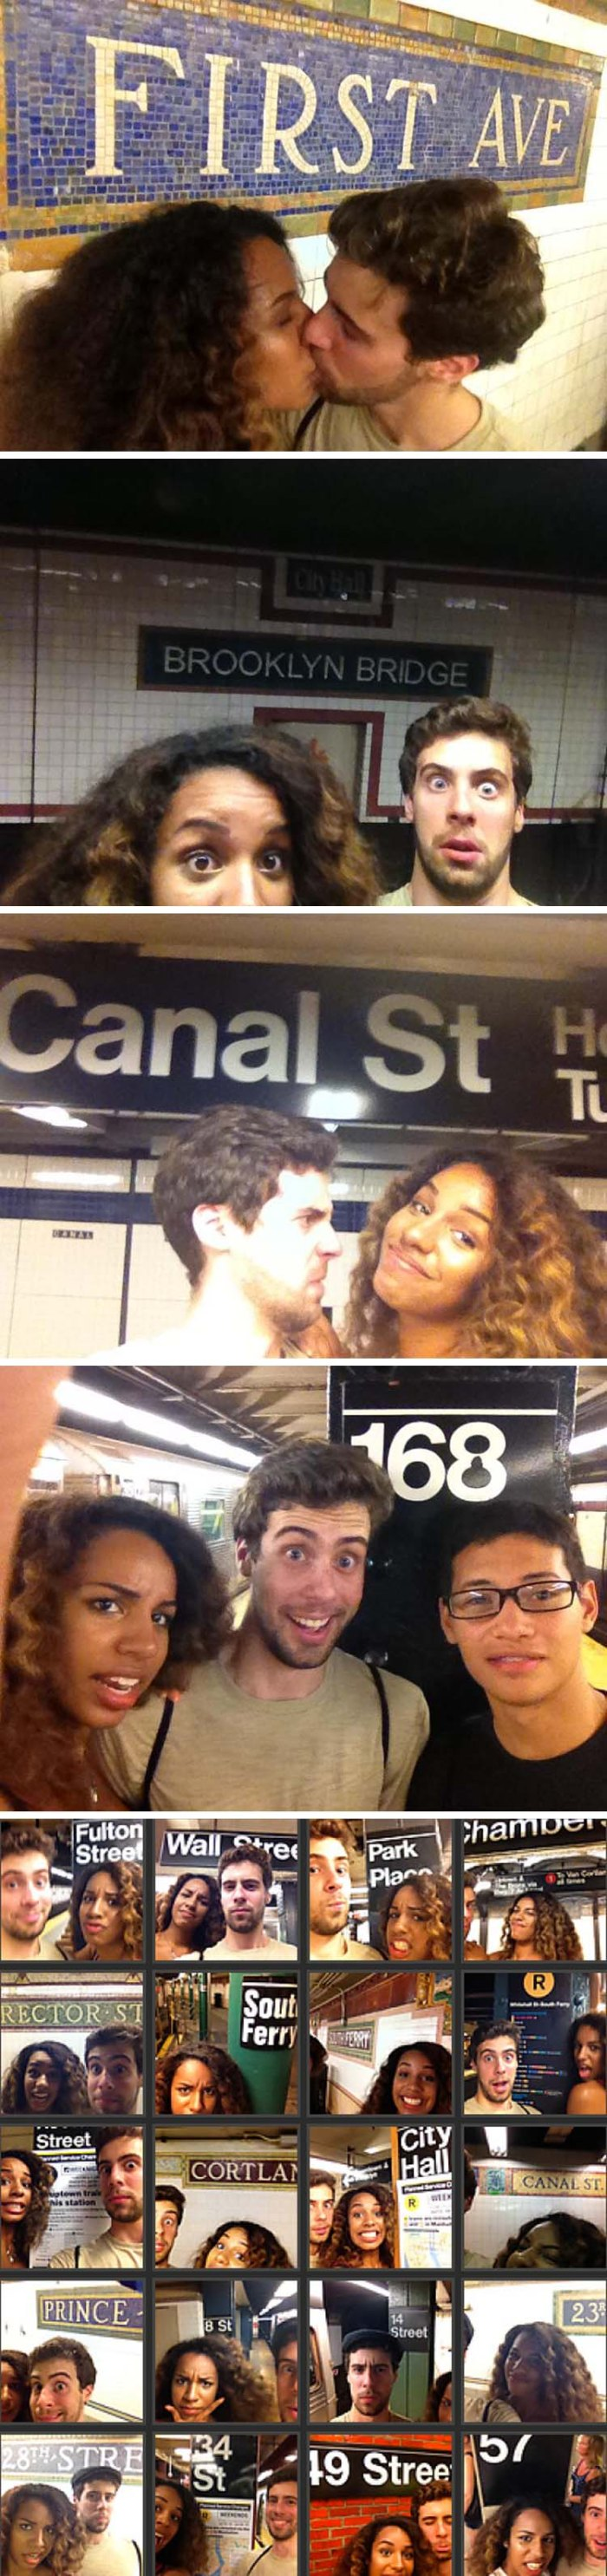 Every Subway Station in Manhattan, photo project by james doernberg and girlfriend kai jordan, took selfie at every subway stop in manhattan in one day